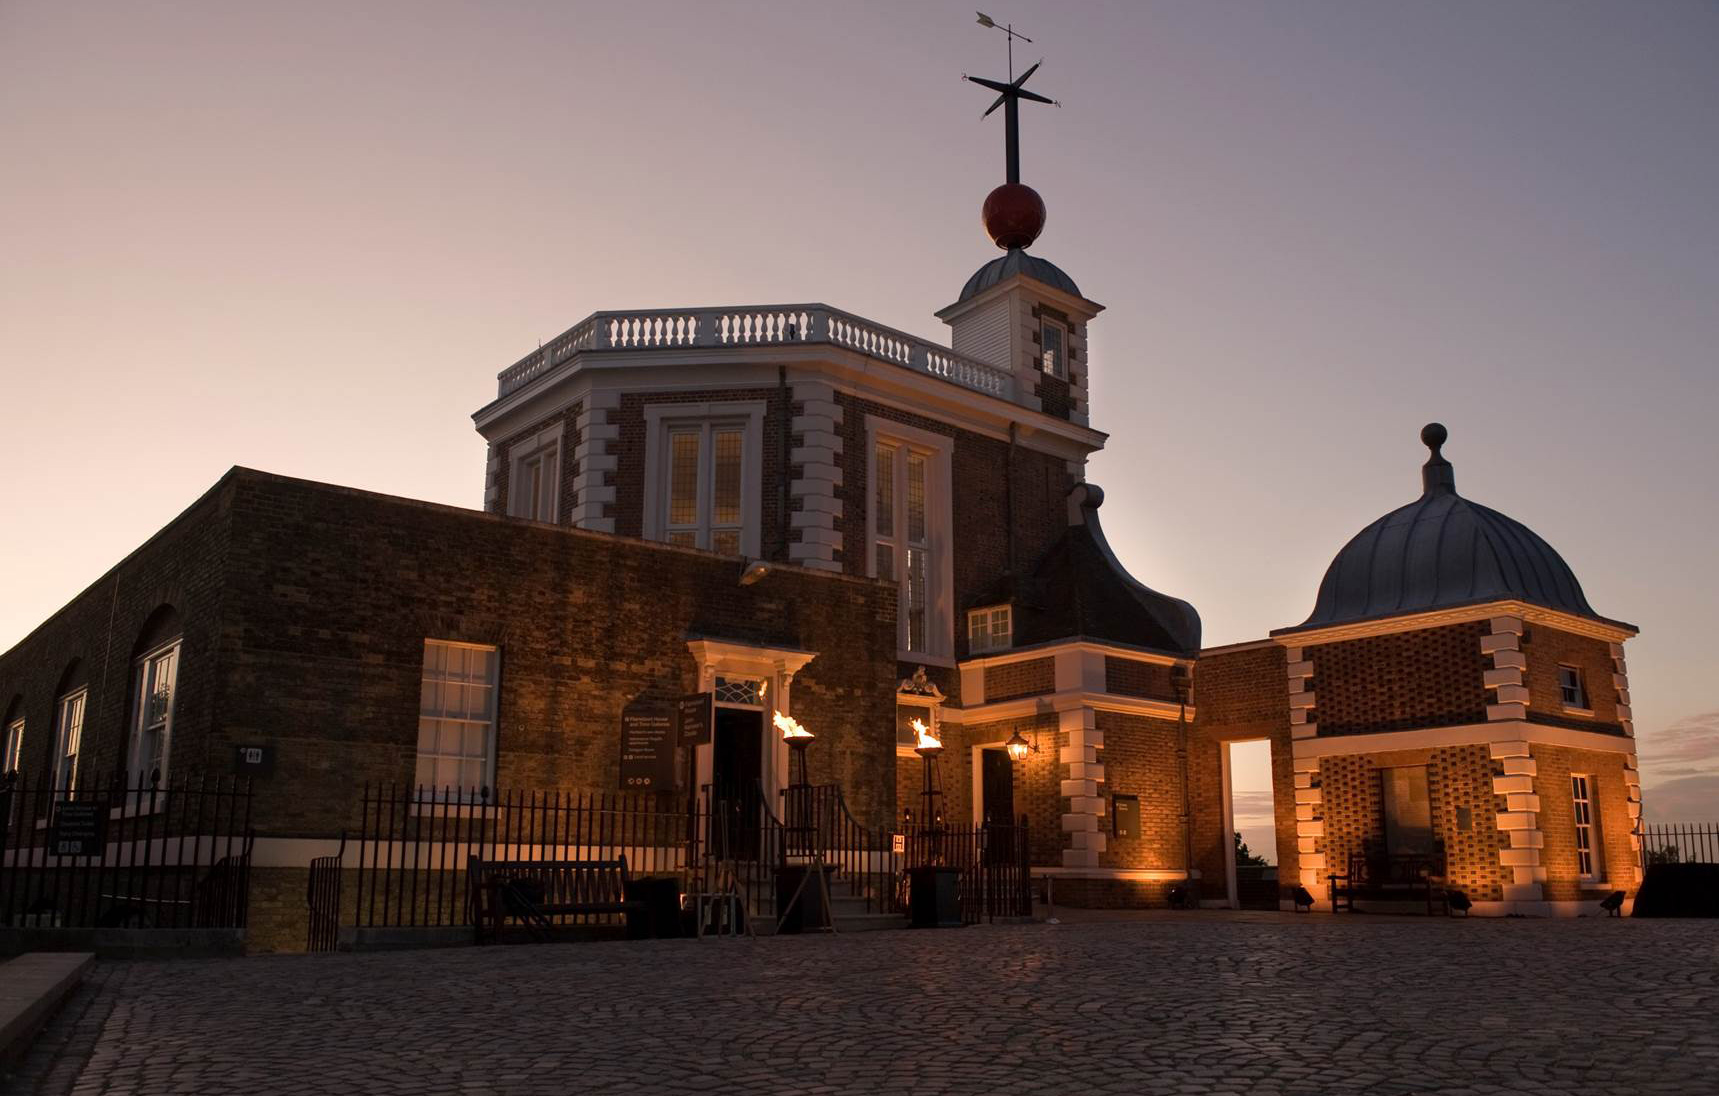 Weddings at The Royal Observatory greenwich venue hire events exterior evening